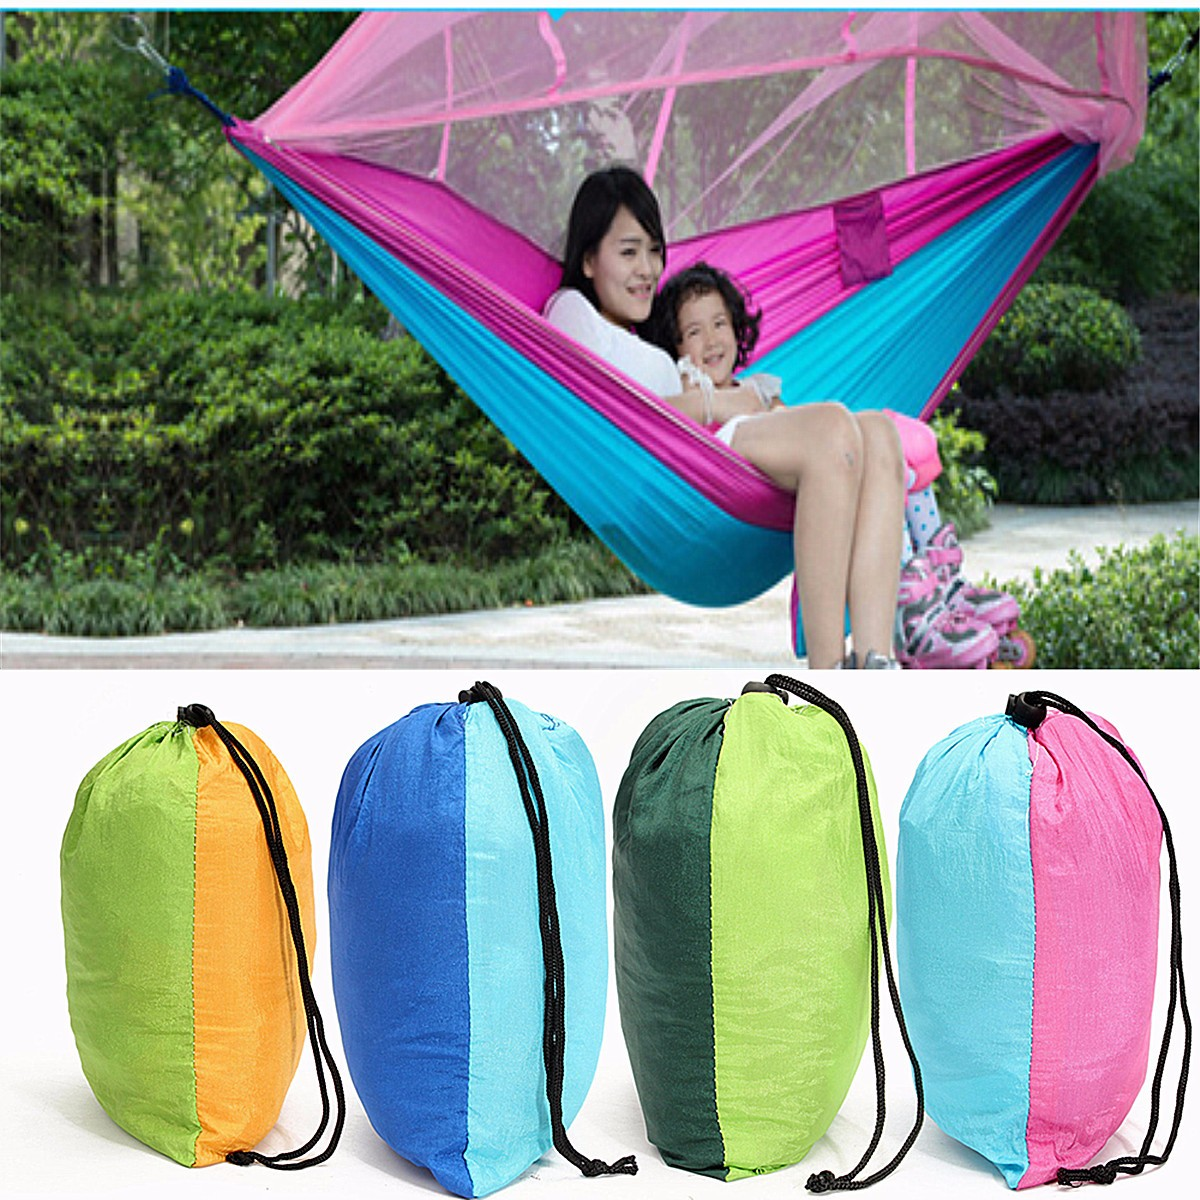 Portable High Strength Nylon Camping Hammock Hanging Double Bed With Mosquito Net Sleeping Hammock(Size: 102x54 inch)